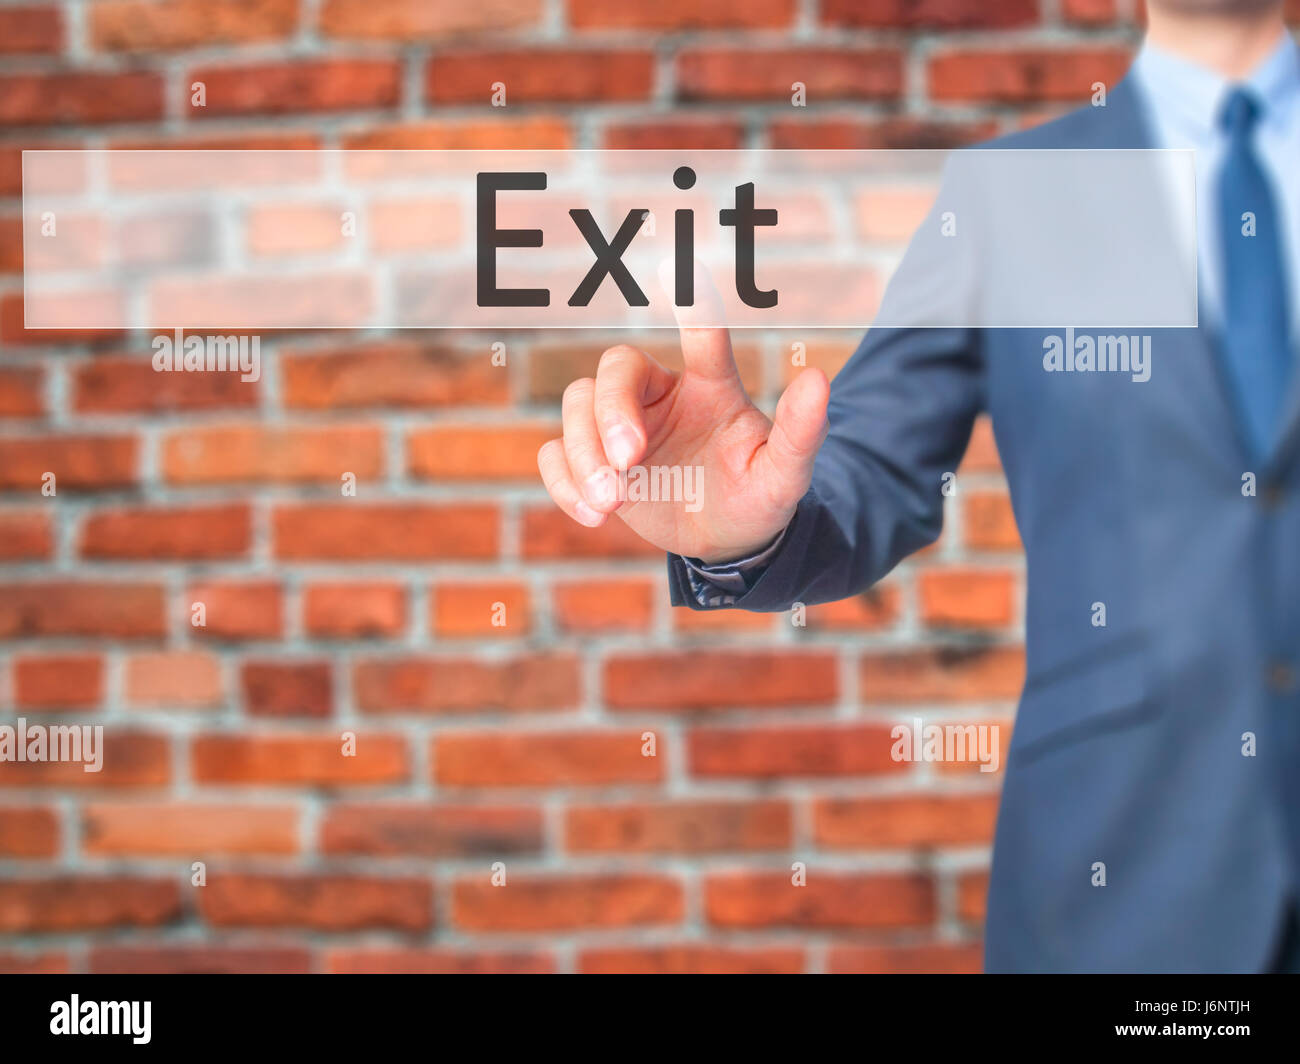 Exit - Businessman hand pressing button on touch screen interface. Business, technology, internet concept. Stock - Stock Image